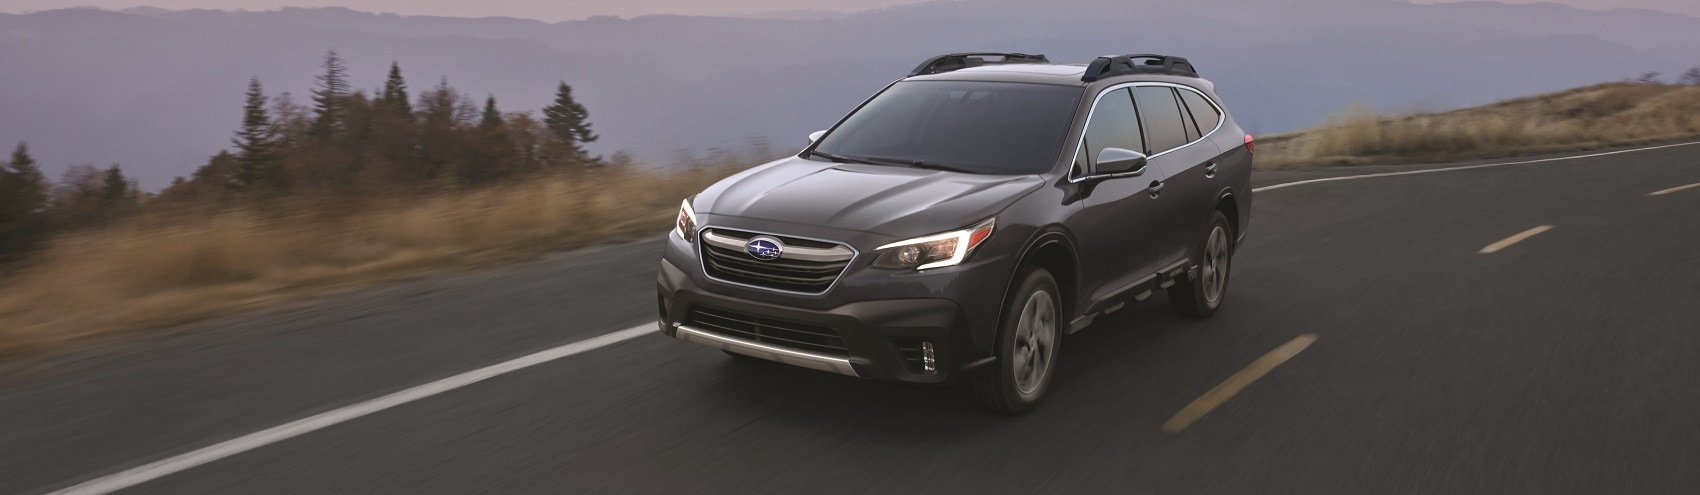 fred beans chevy top car release 2020 top car release 2020